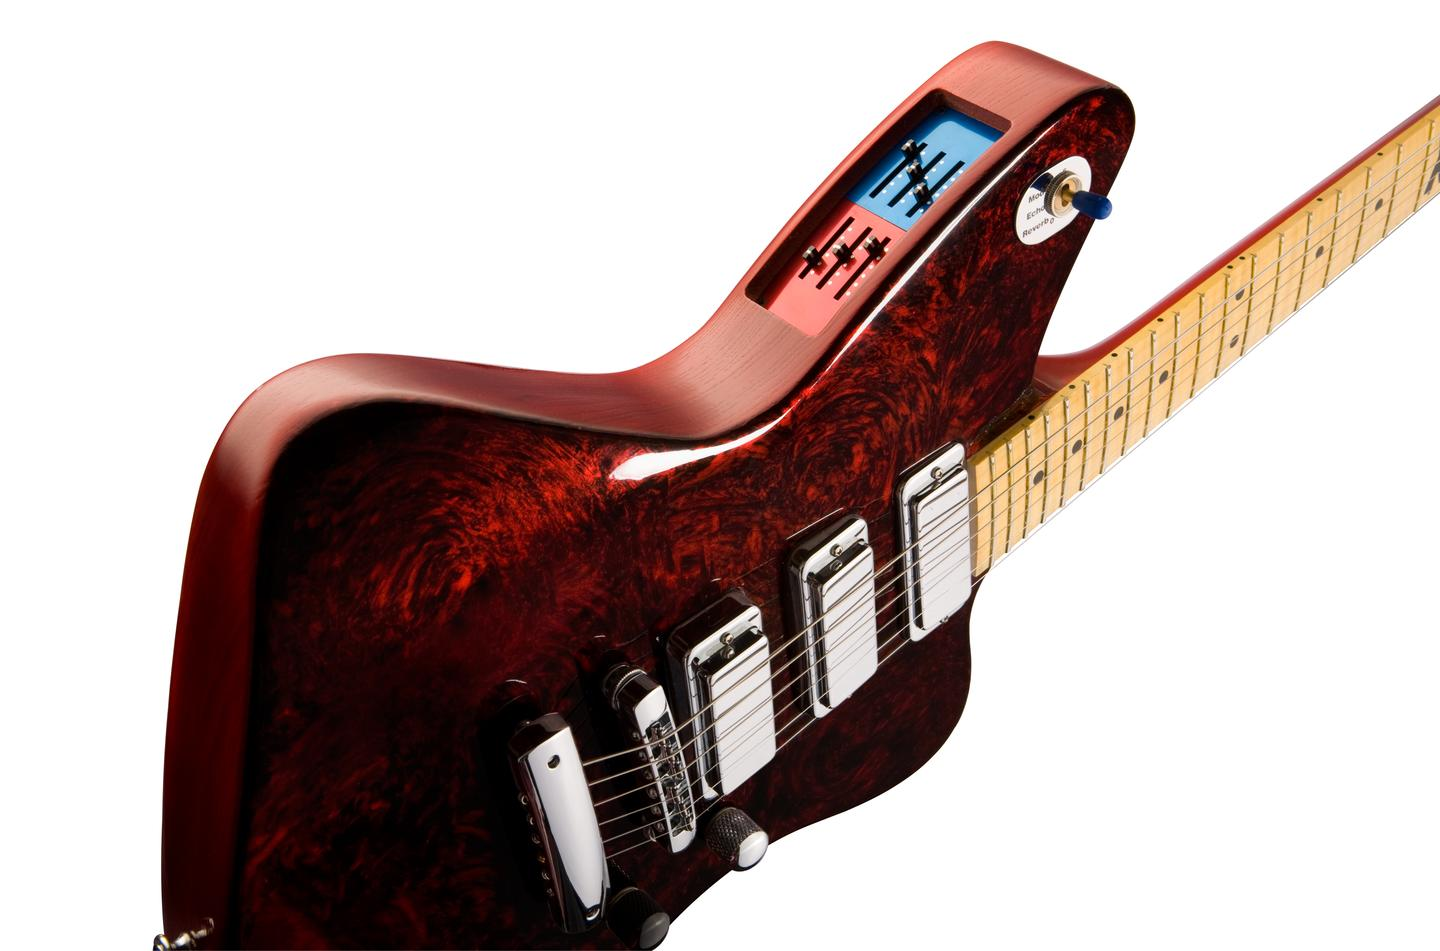 Gibson has announced that its Pure Analog Engine Signal Processing platform, which drives the tech in its Firebird X, is to be opened up to third party application development